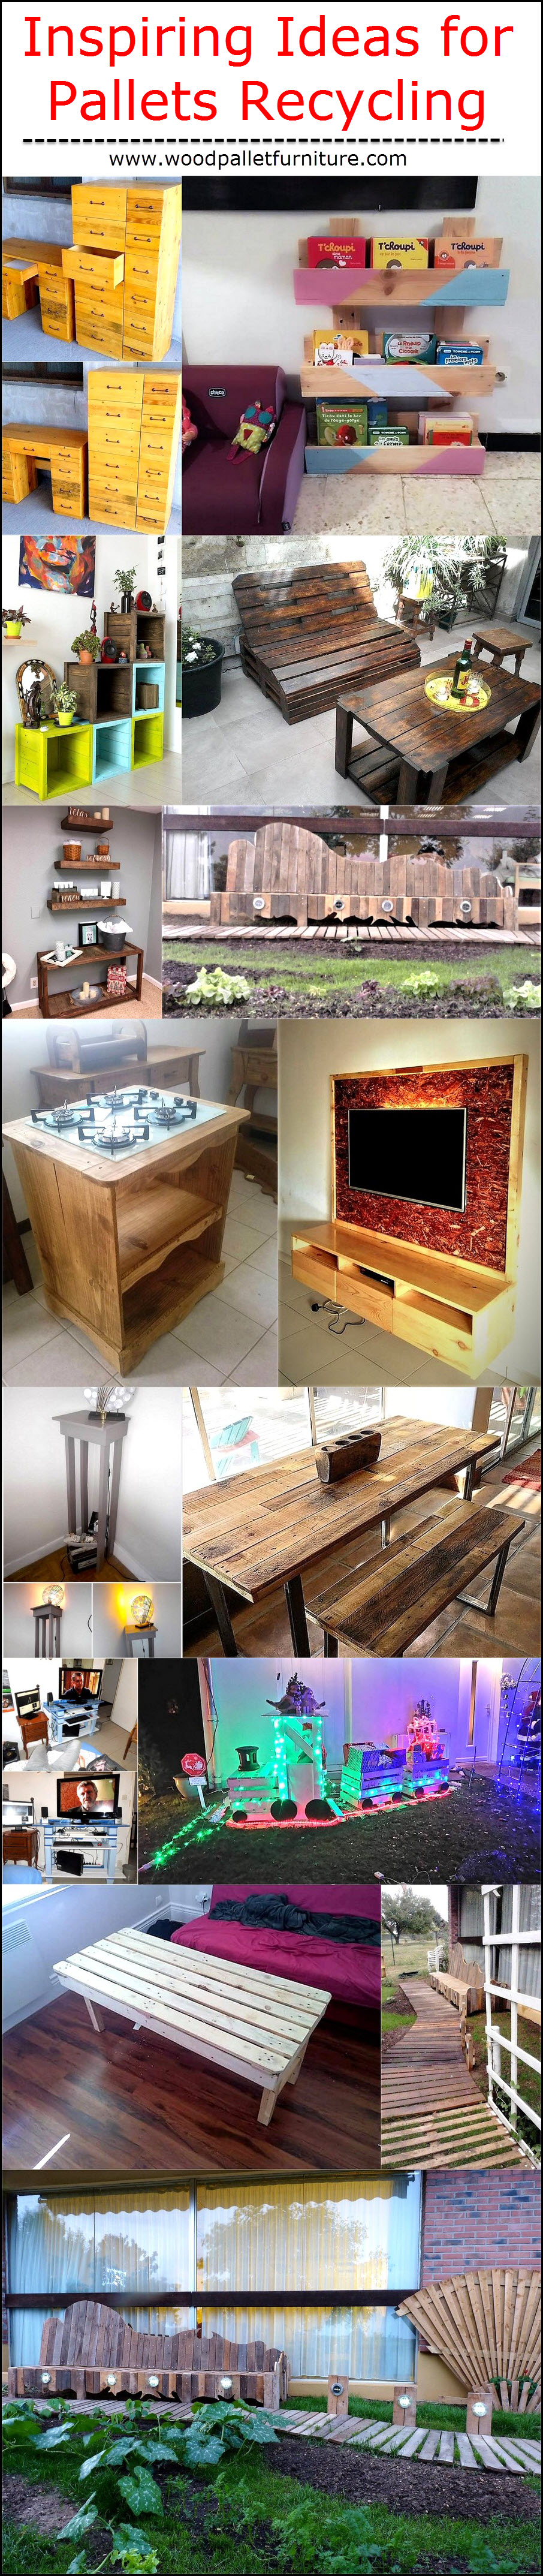 inspiring-ideas-for-pallets-recycling